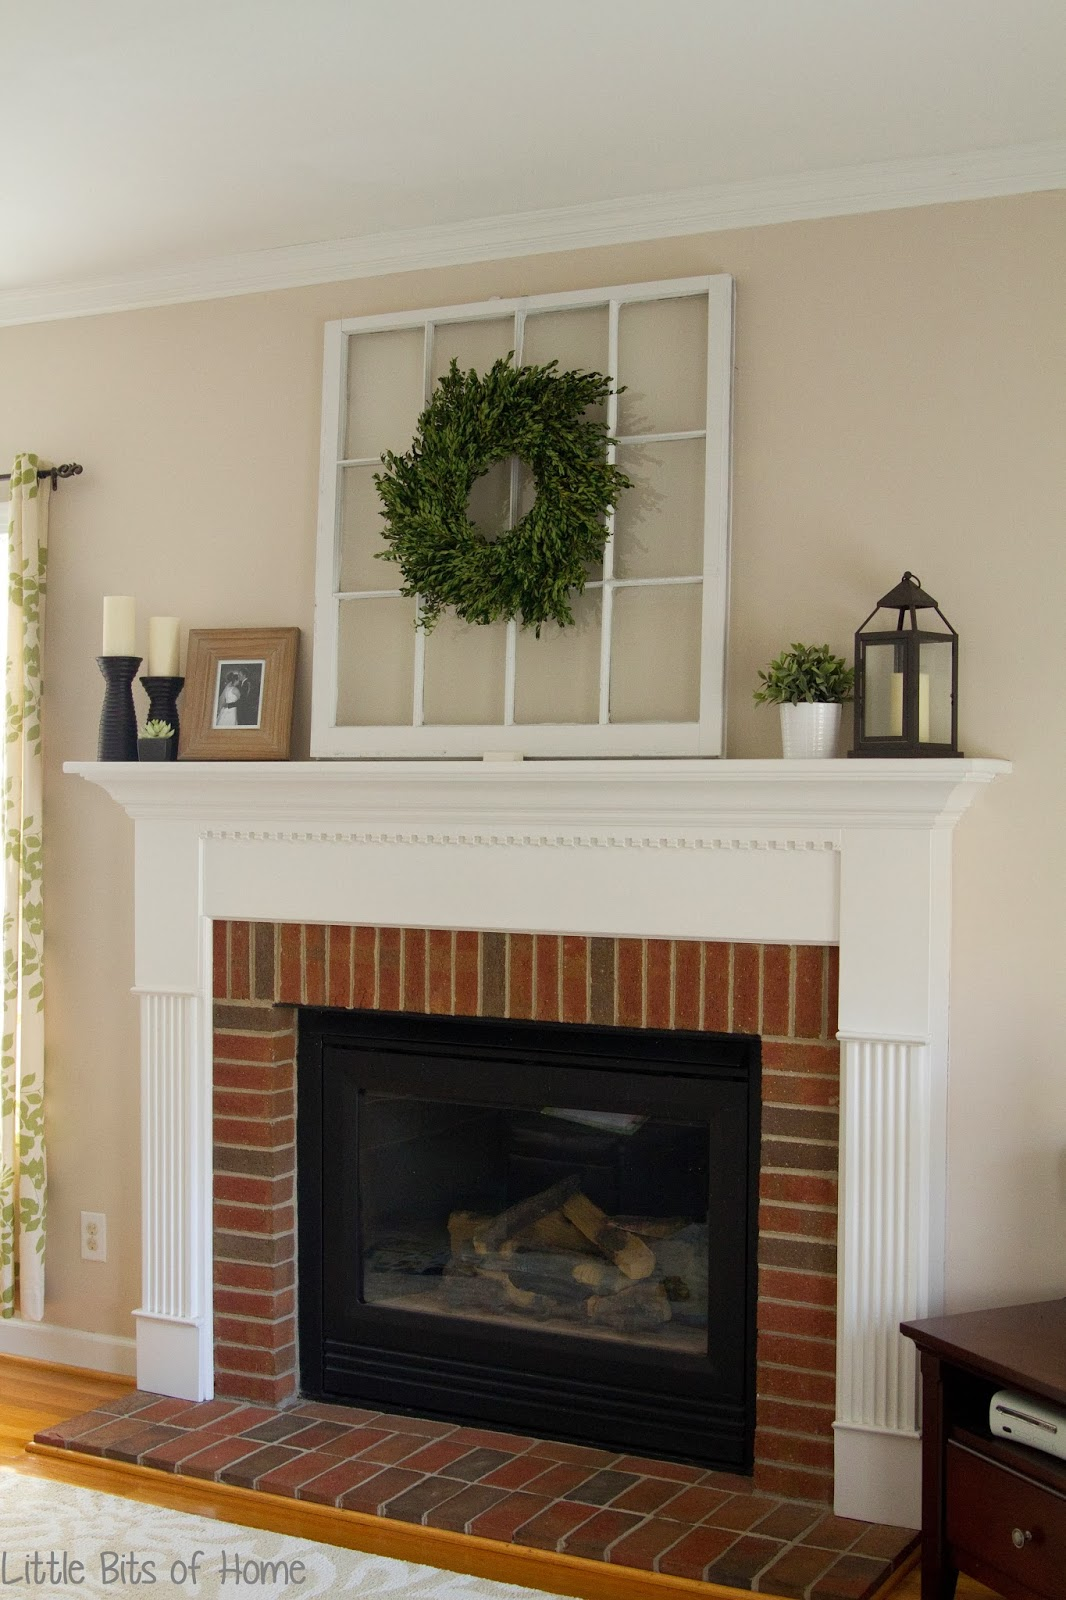 Everyday fireplace decor for Over fireplace decor